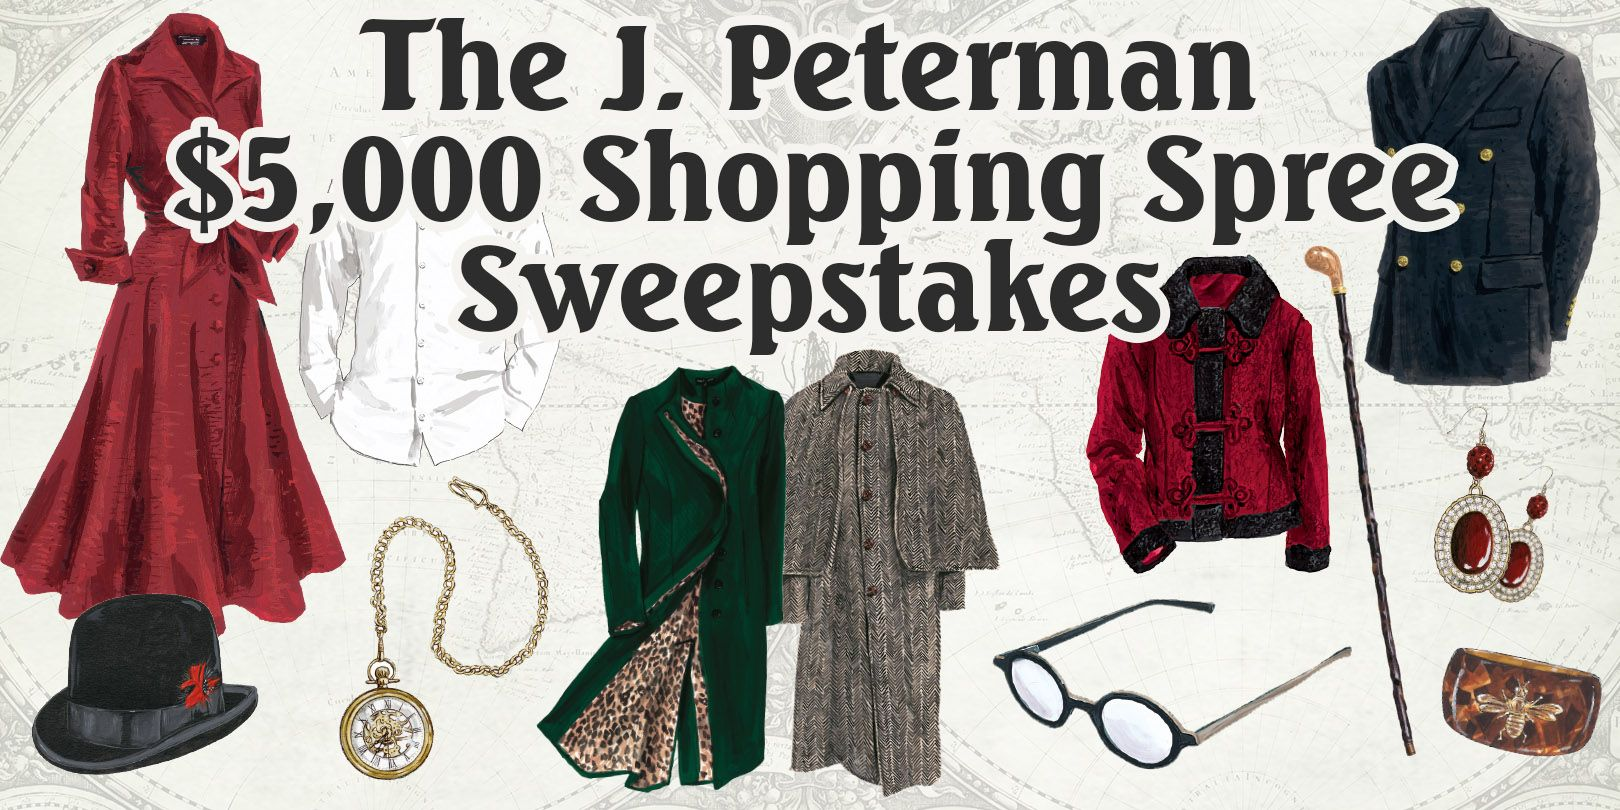 Win 5k to shop at J Peterman. What can I possibly buy